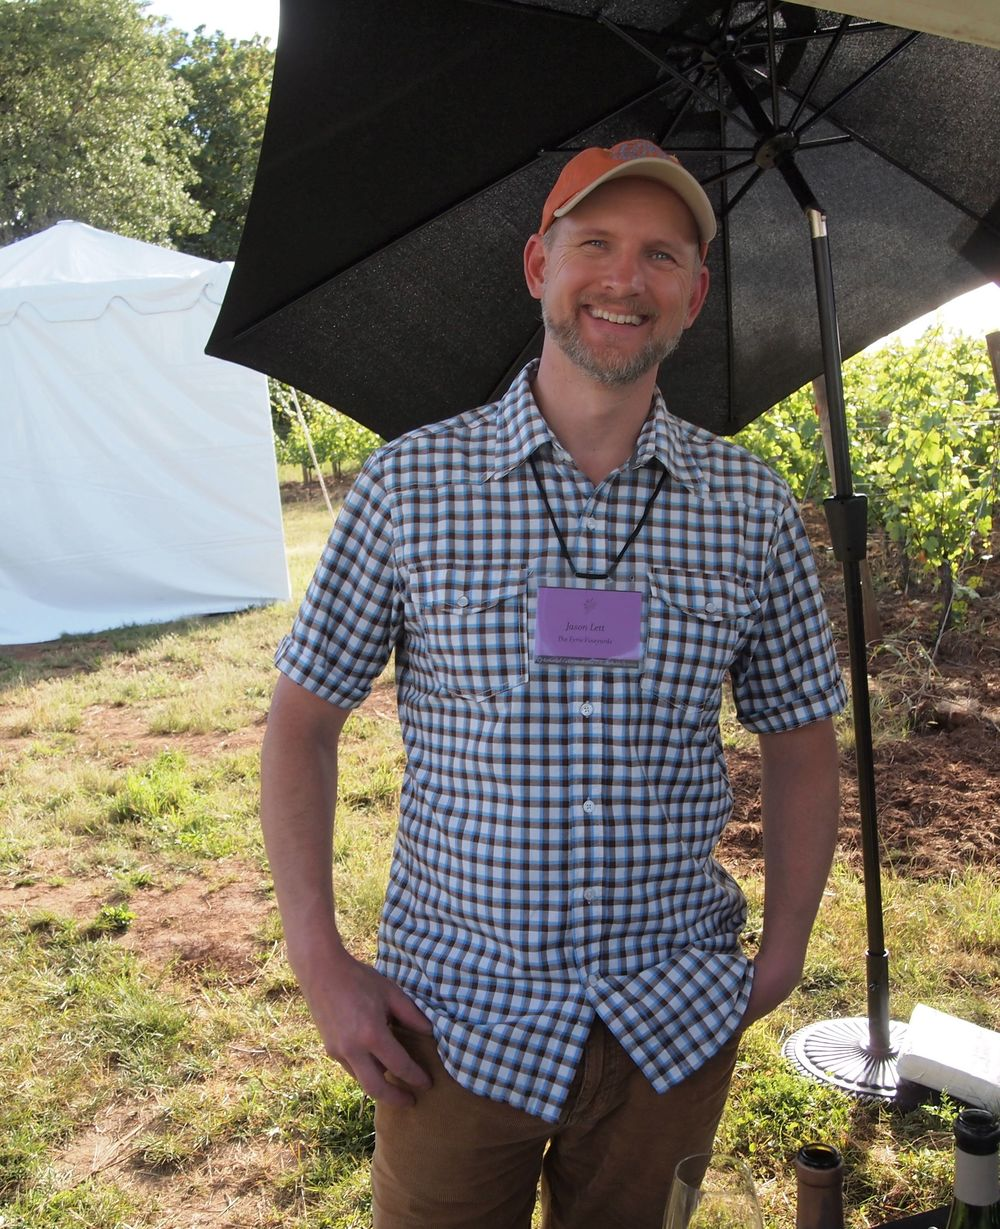 Jason Lett, of Eyrie Vineyards.